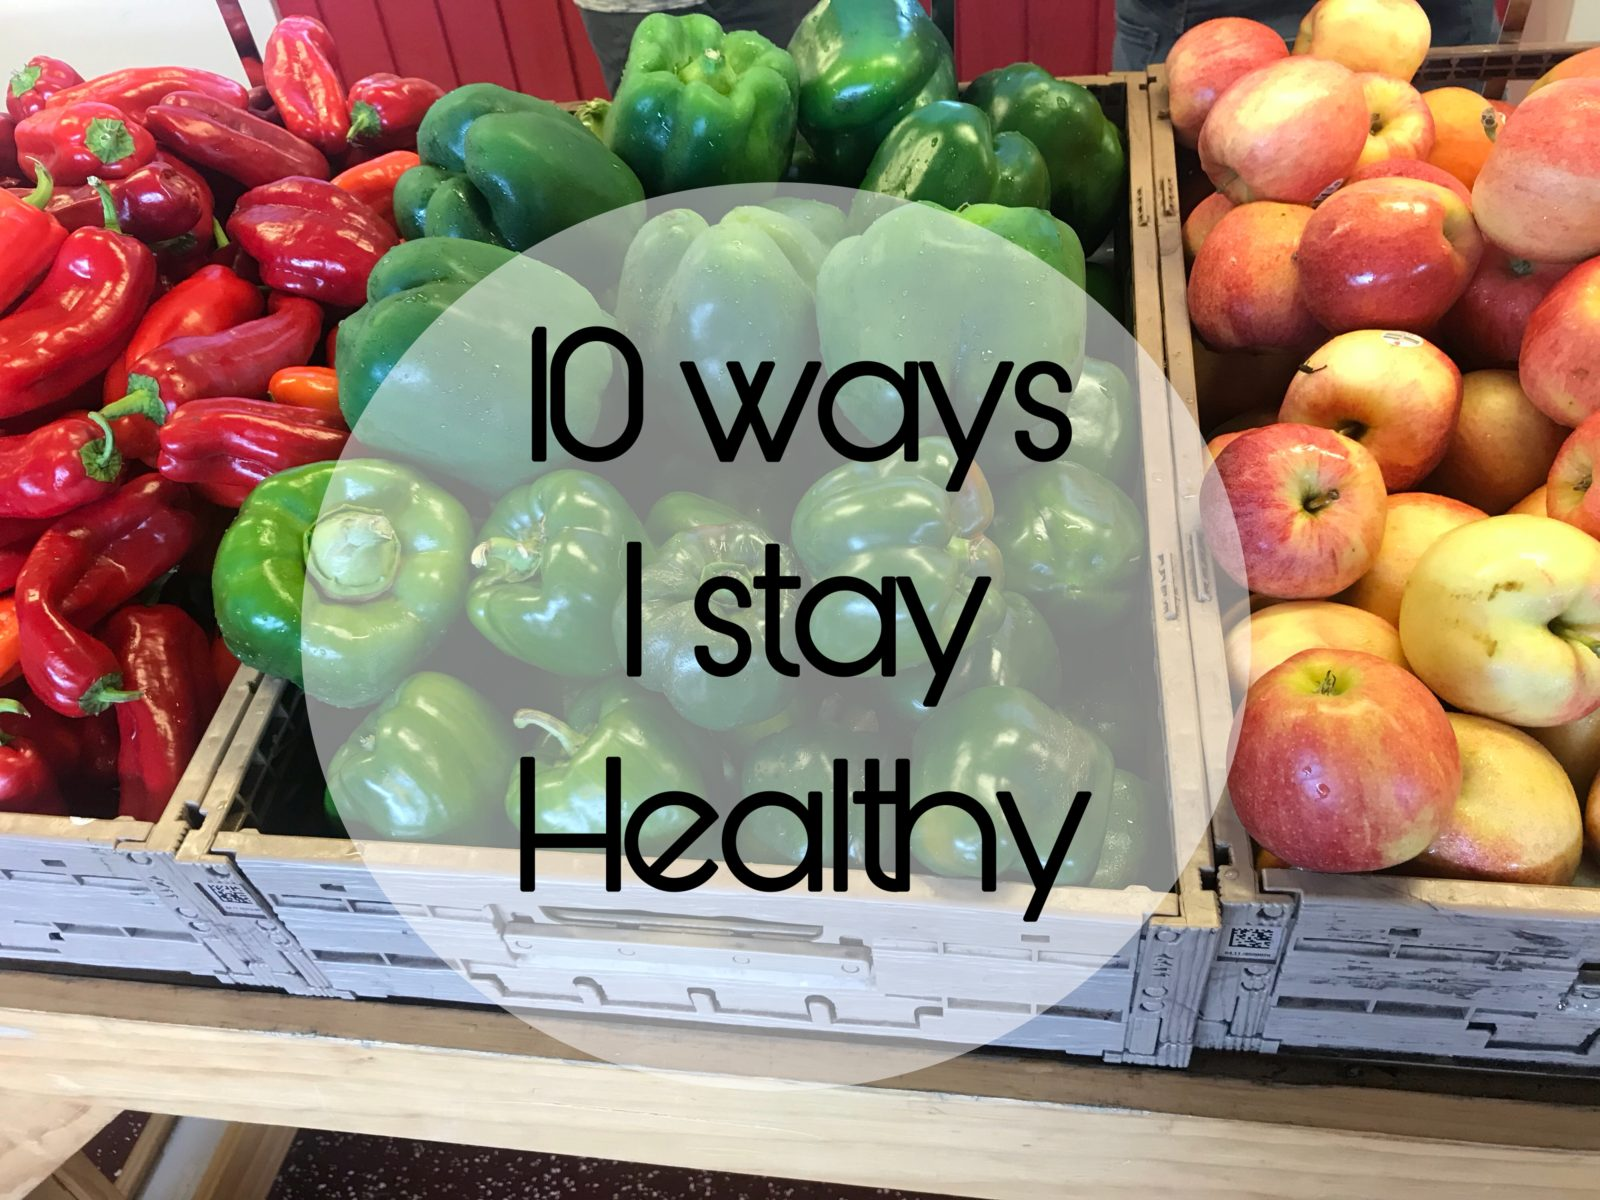 10 ways I stay healthy